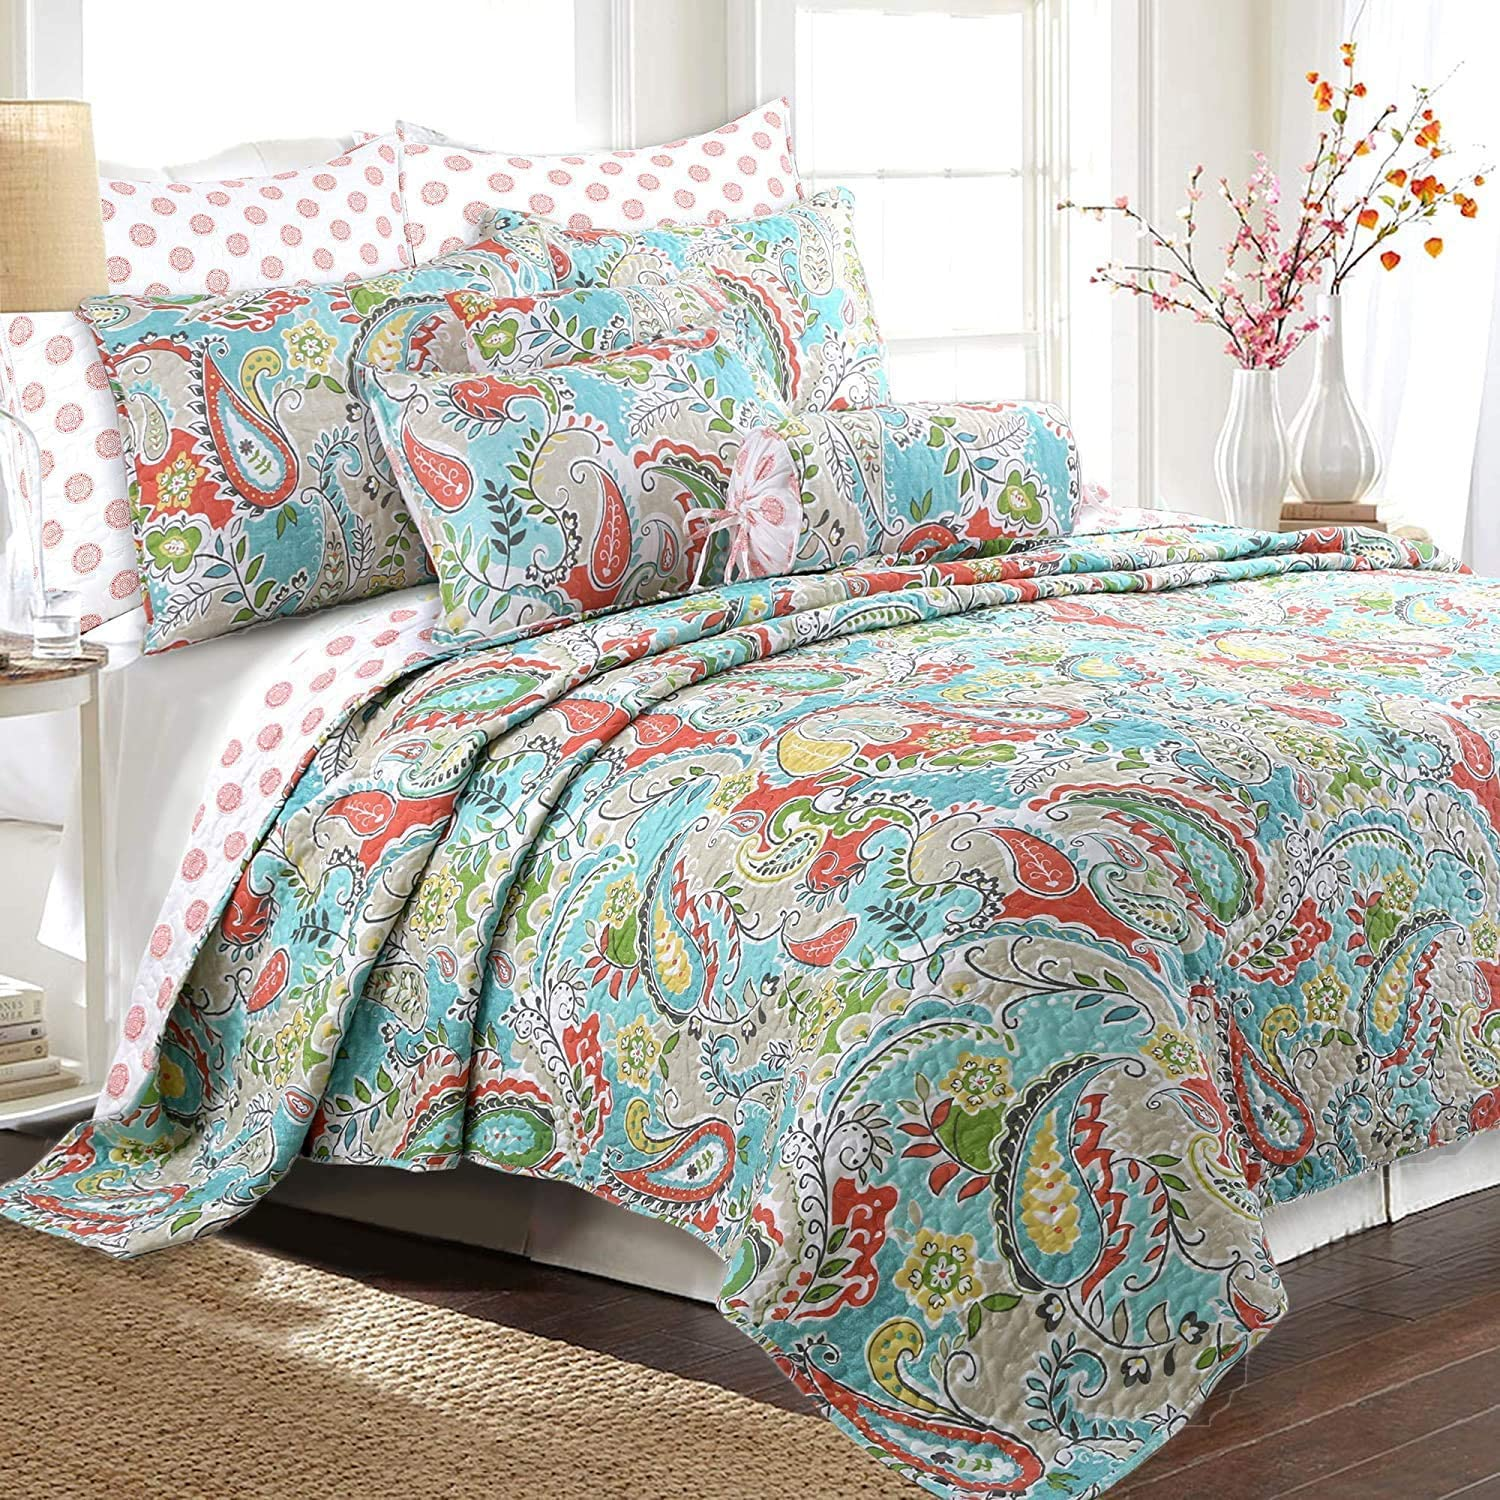 Cozy Line Home Fashions Cotton Reversible Quilt Bedding Set, Bedspread, Coverlet, 1 Quilt and 2 Pillow Shams (Mirage Paisley, Queen - 3 Piece)